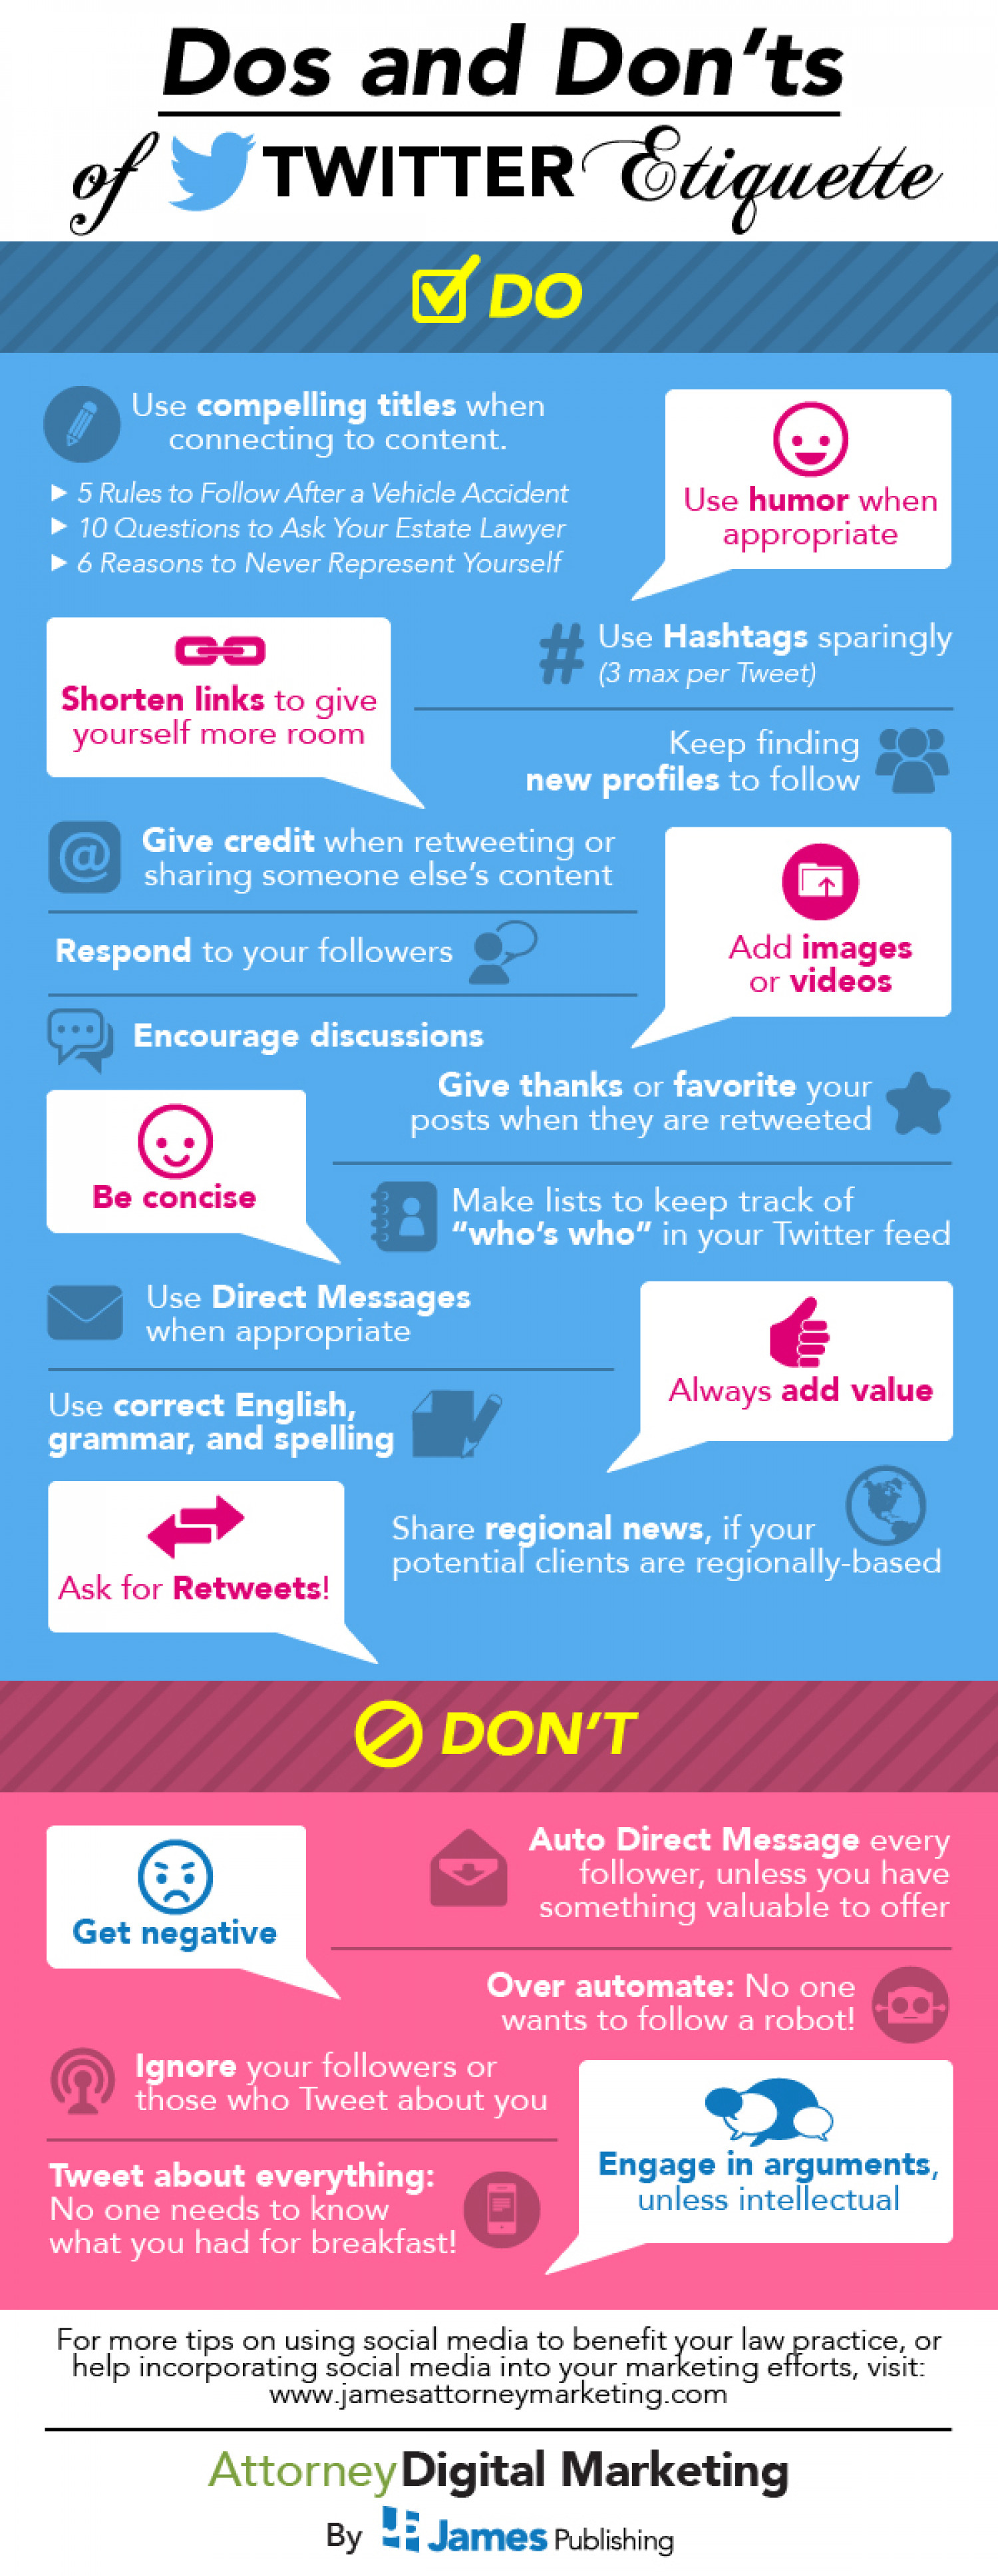 Dos and Don'ts of Twitter Etiquette Infographic